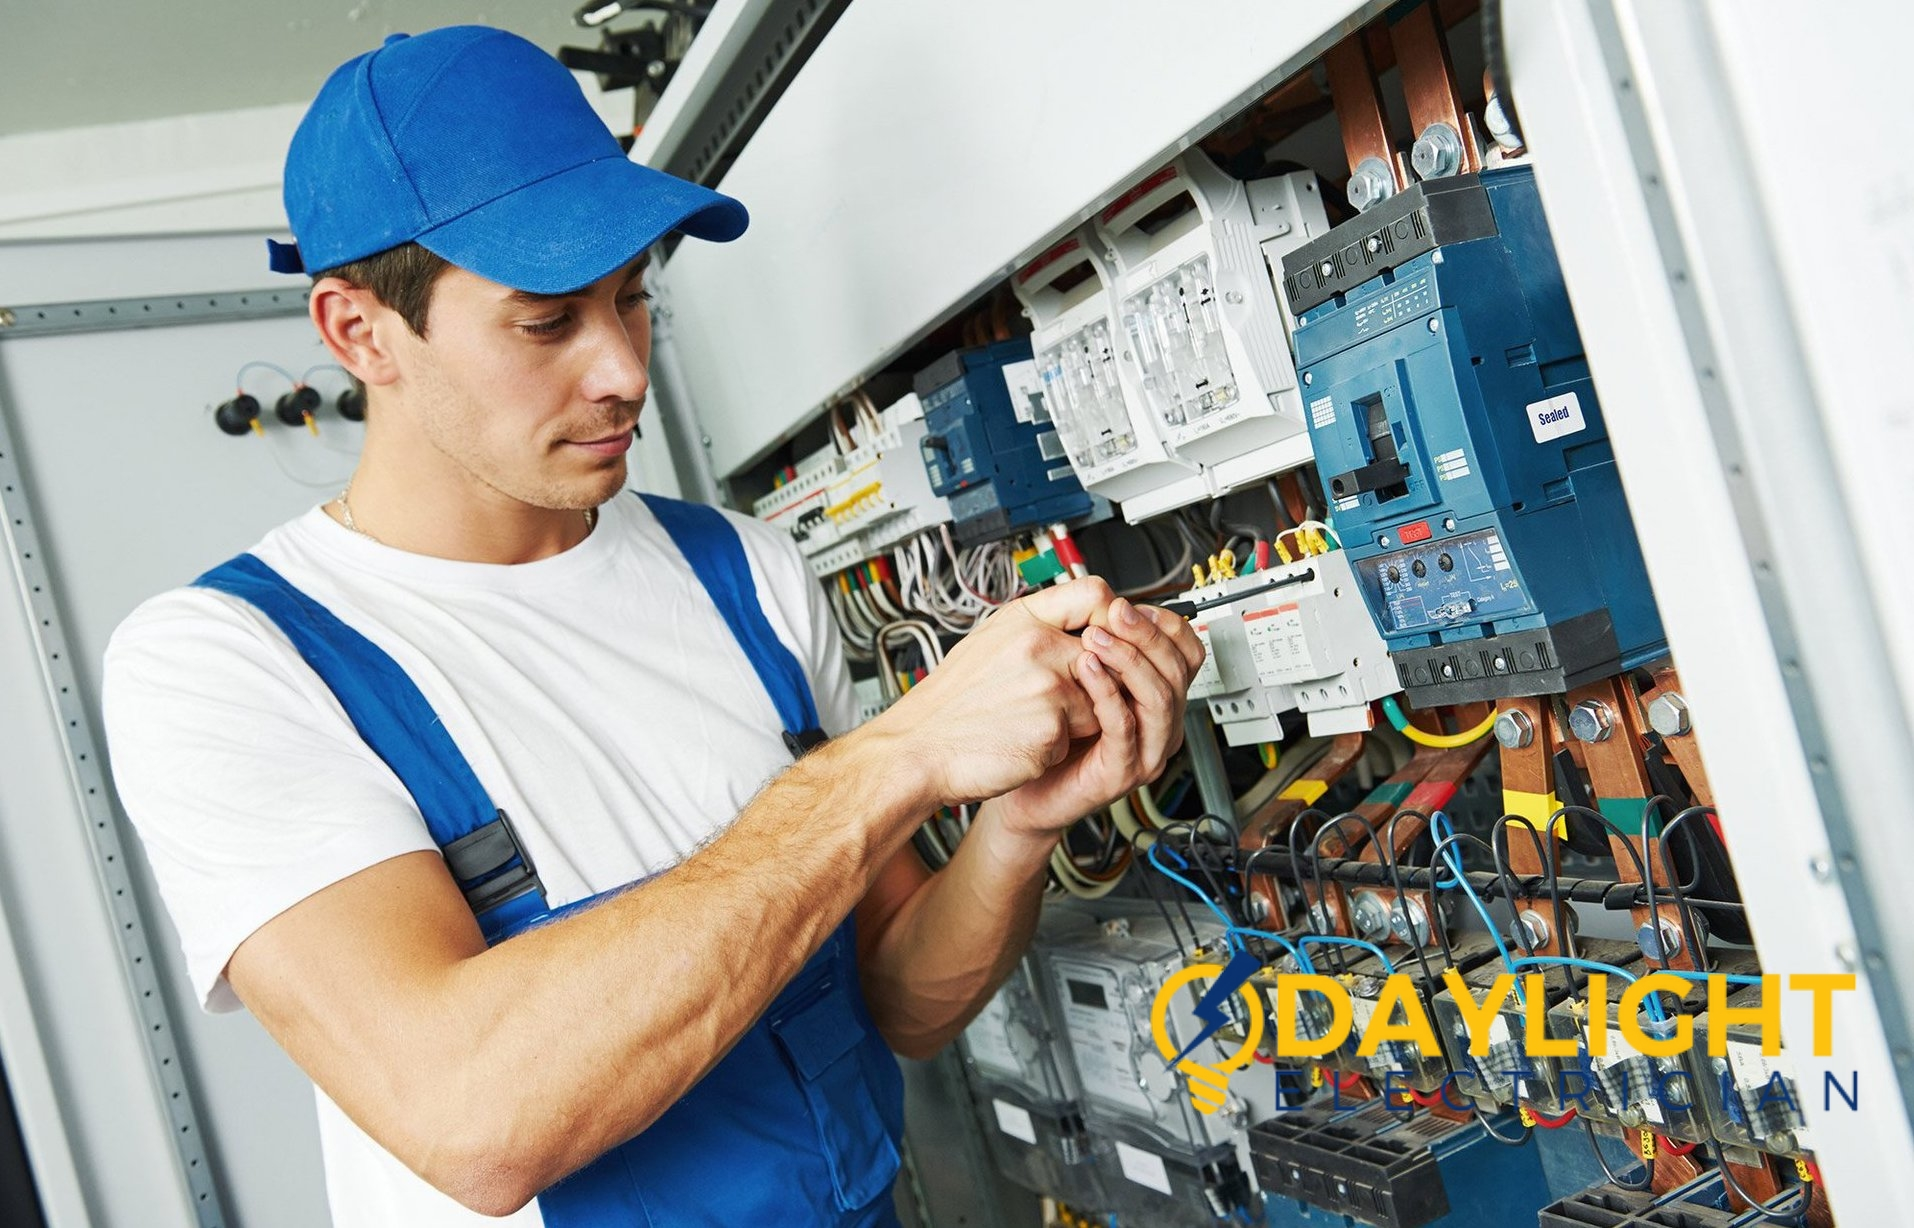 24-hour-electrician-singapore_wm